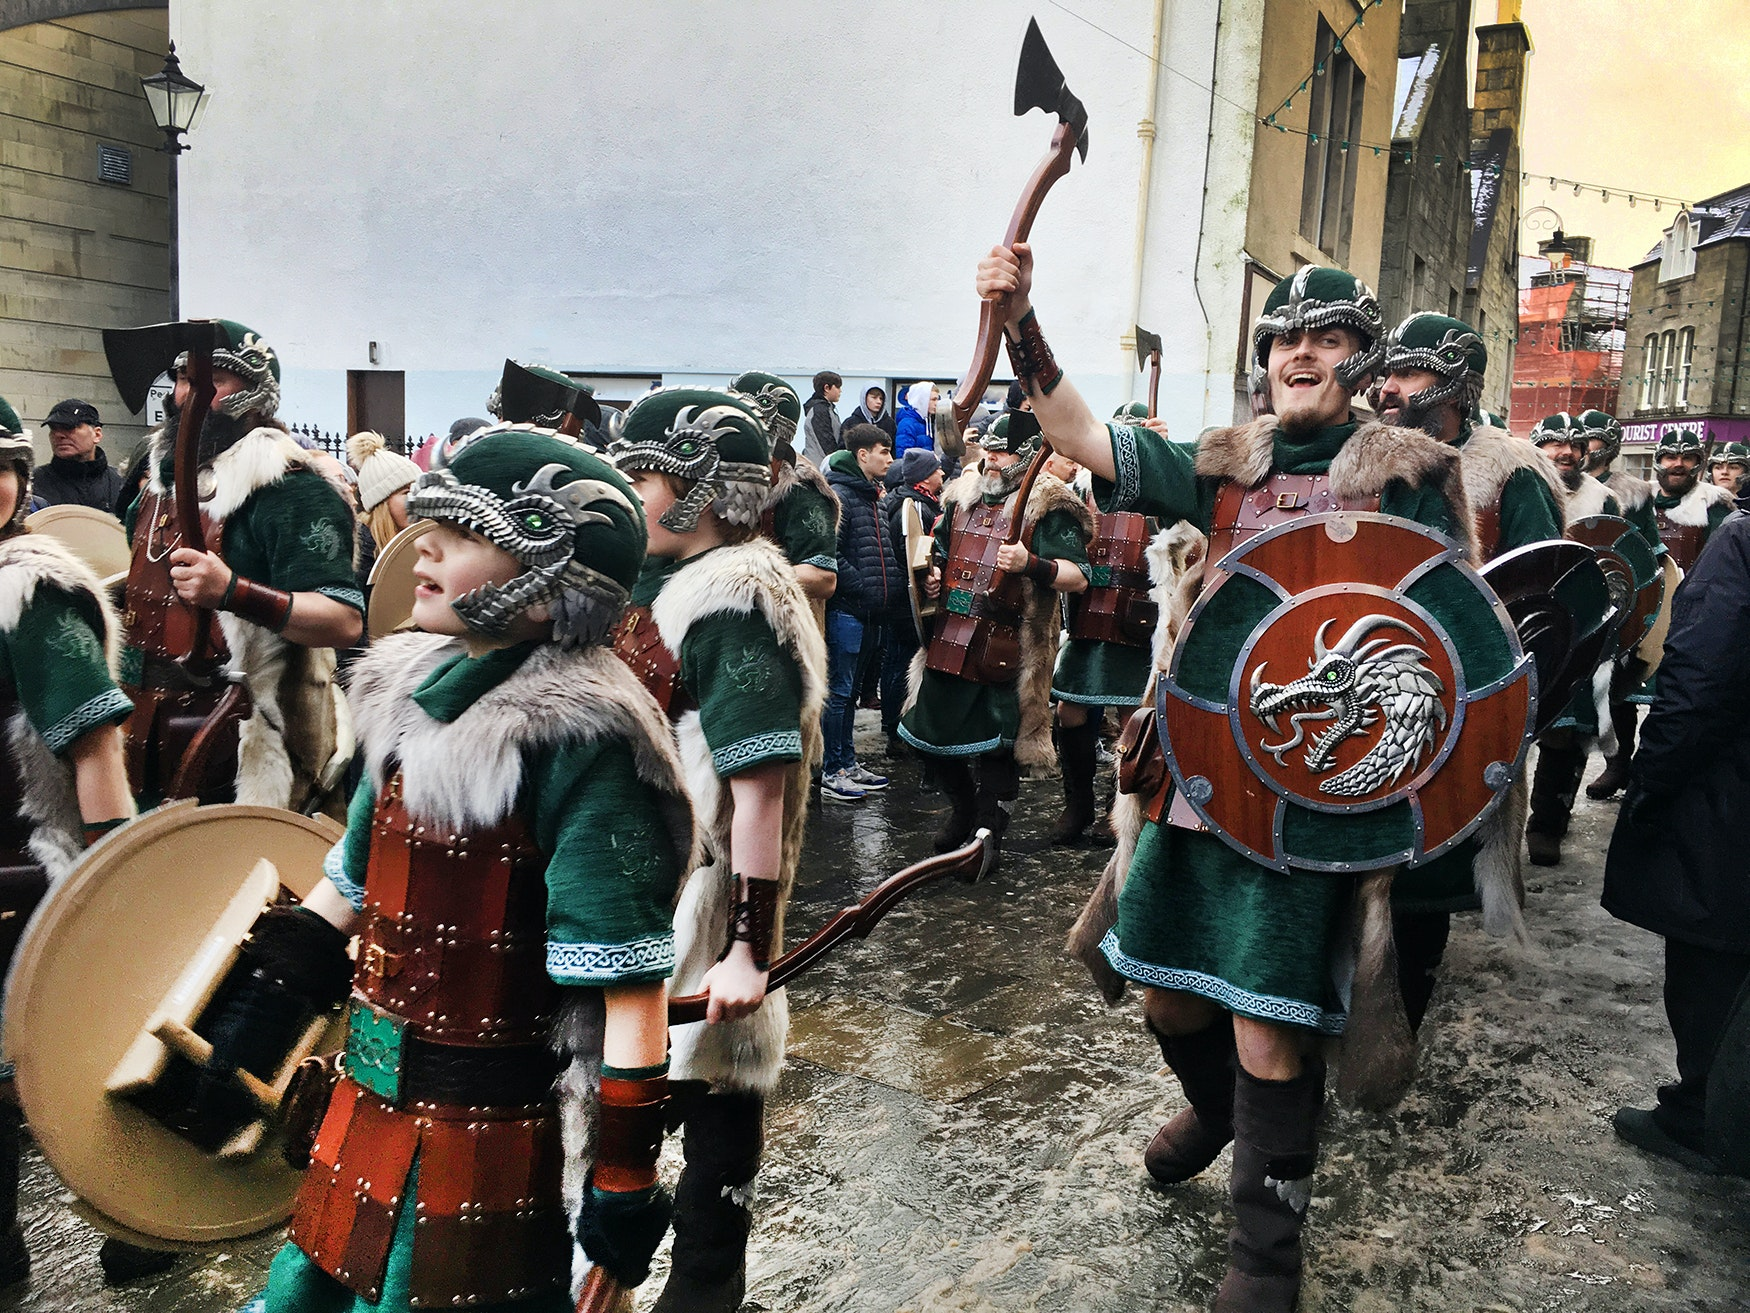 Up Helly Aa is celebrated in Lerwick every year on the last Tuesday in January.